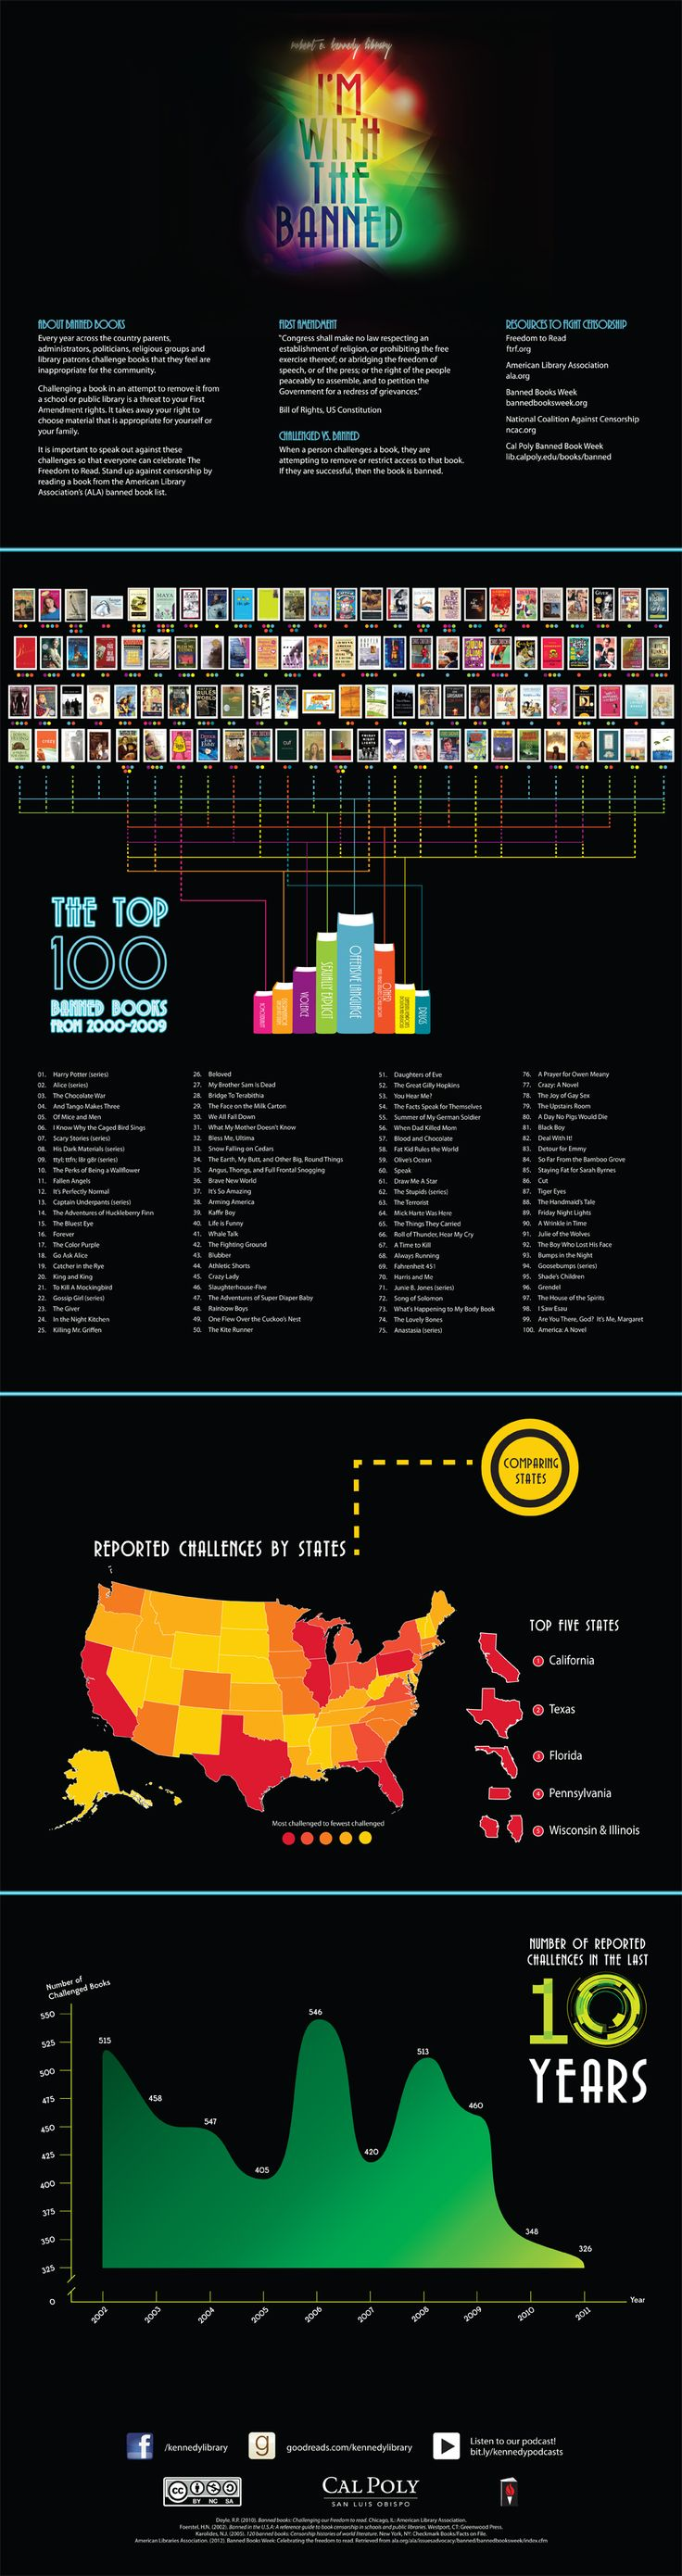 The Kennedy Library at Cal Poly developed this infographic for Banned Books Week 2012. Click through to see more detail.